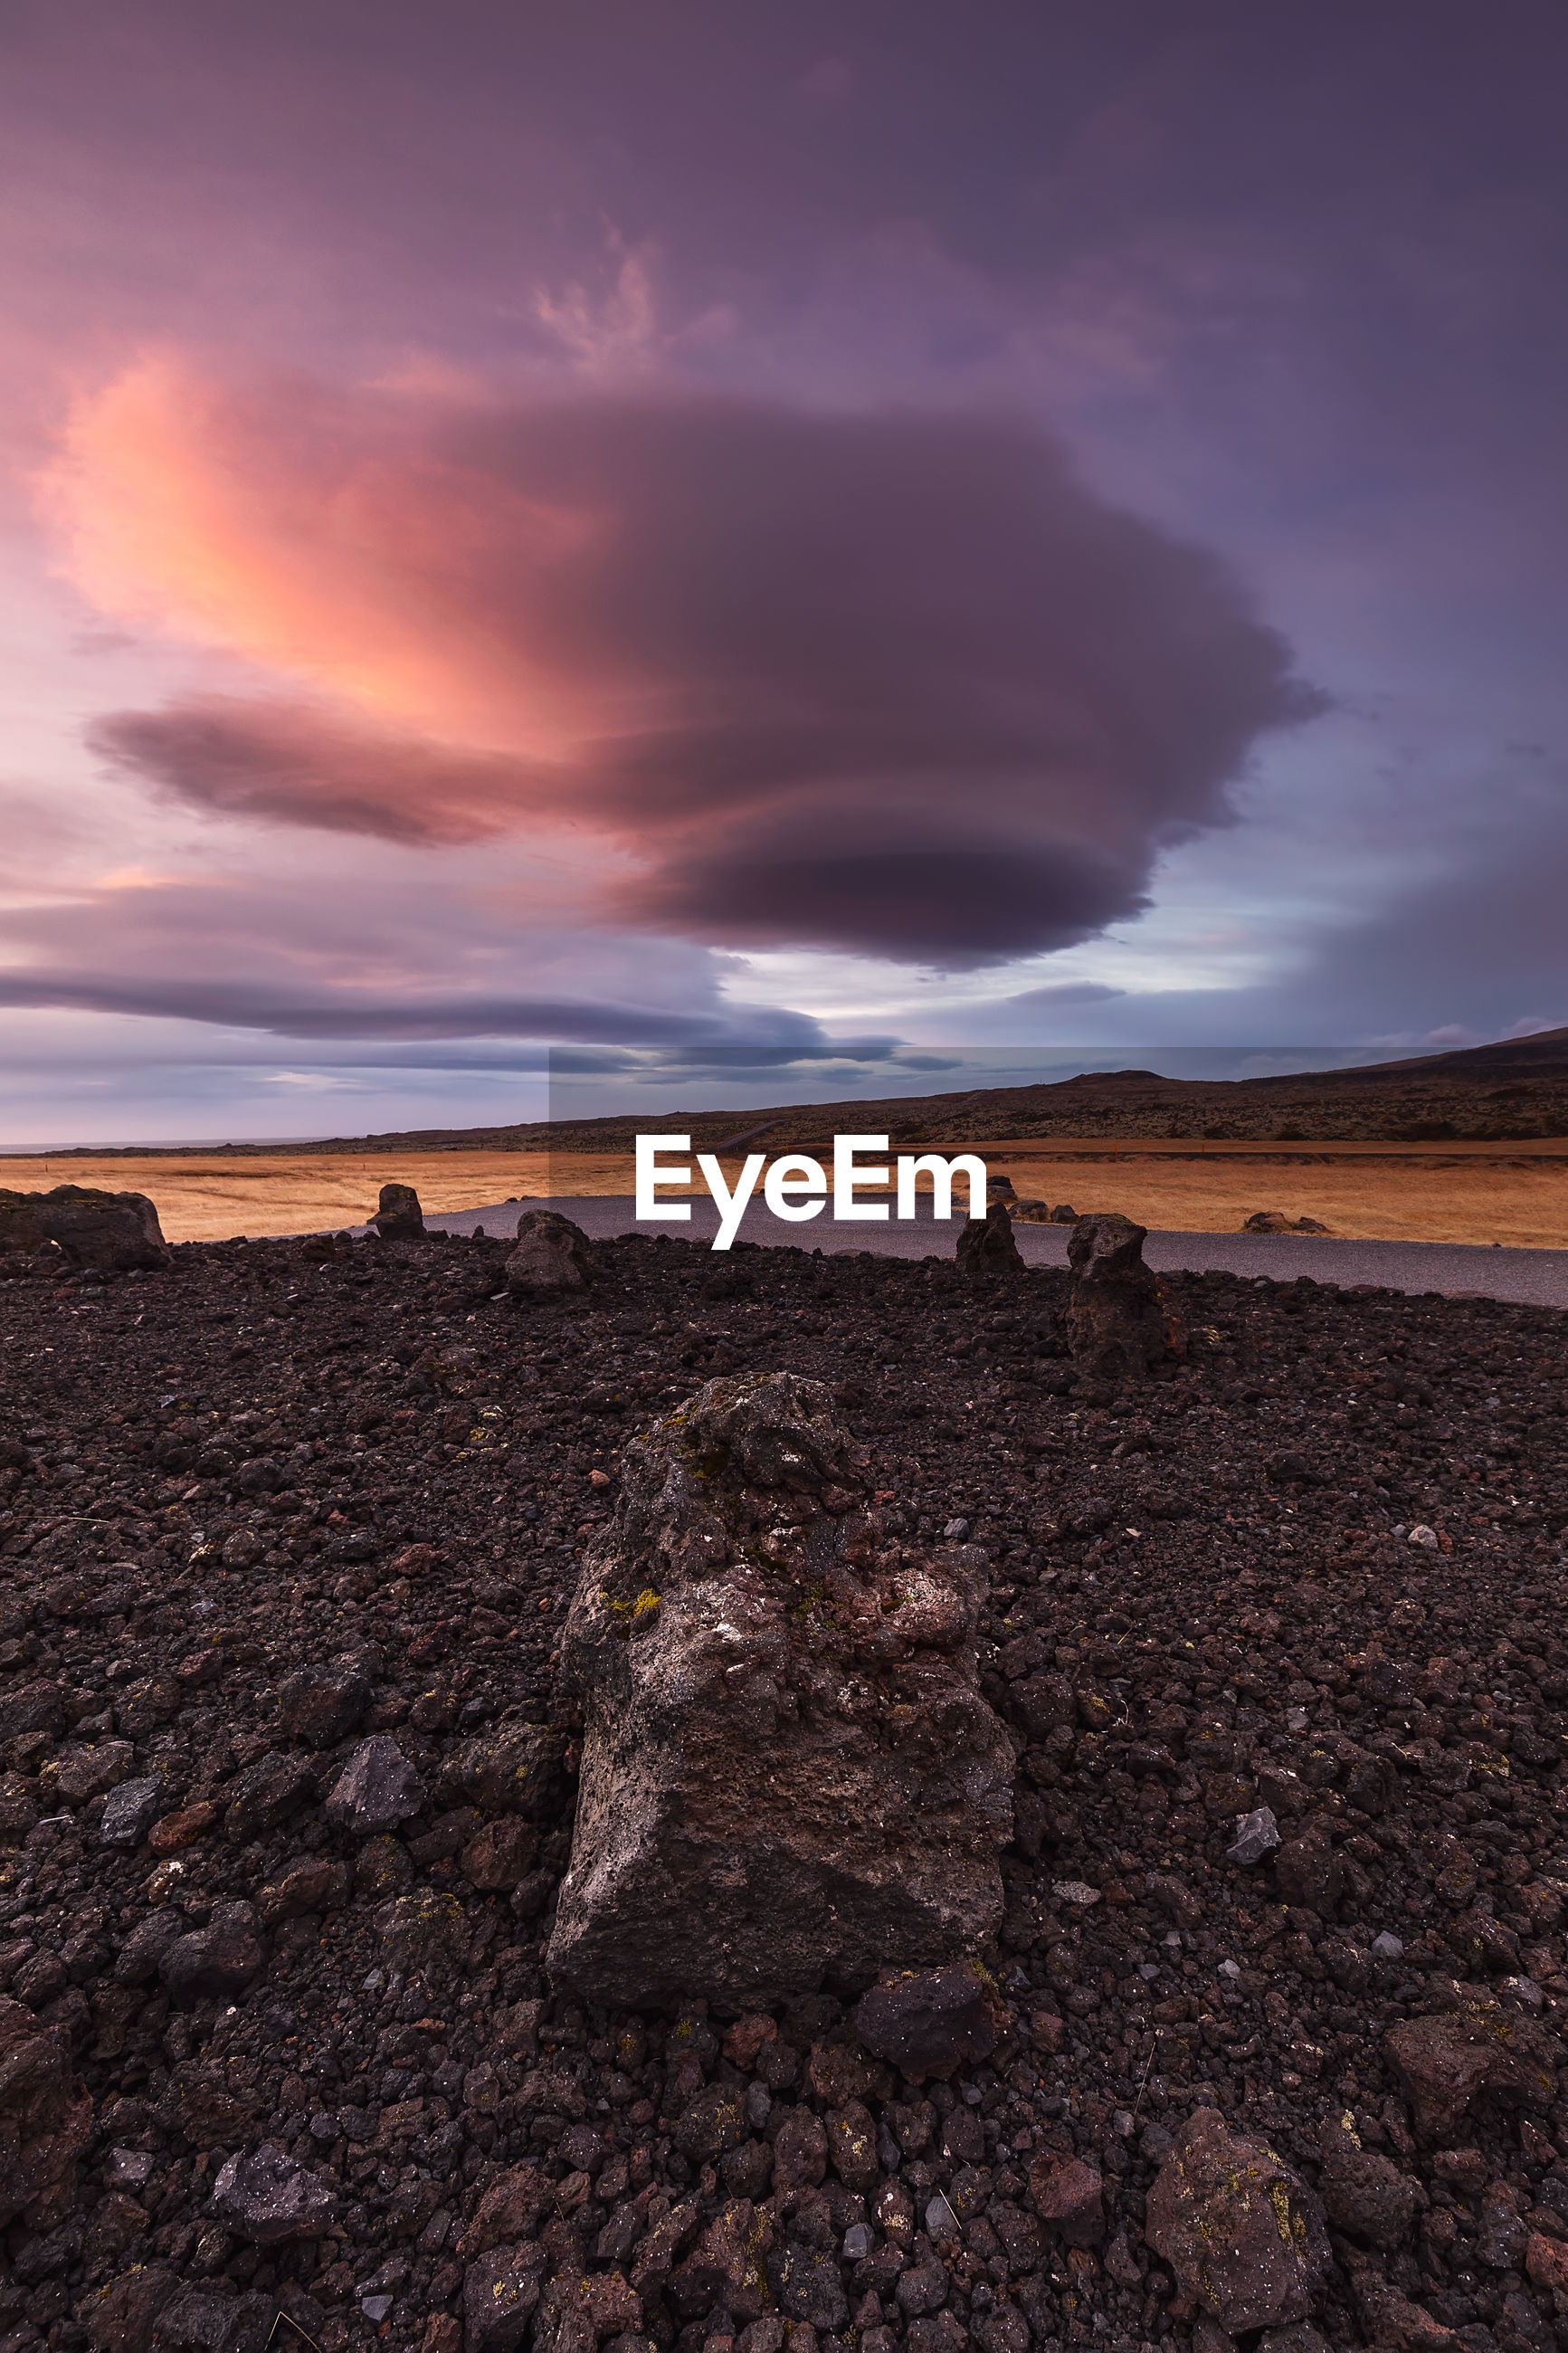 VIEW OF ROCKS ON LAND AGAINST SKY DURING SUNSET